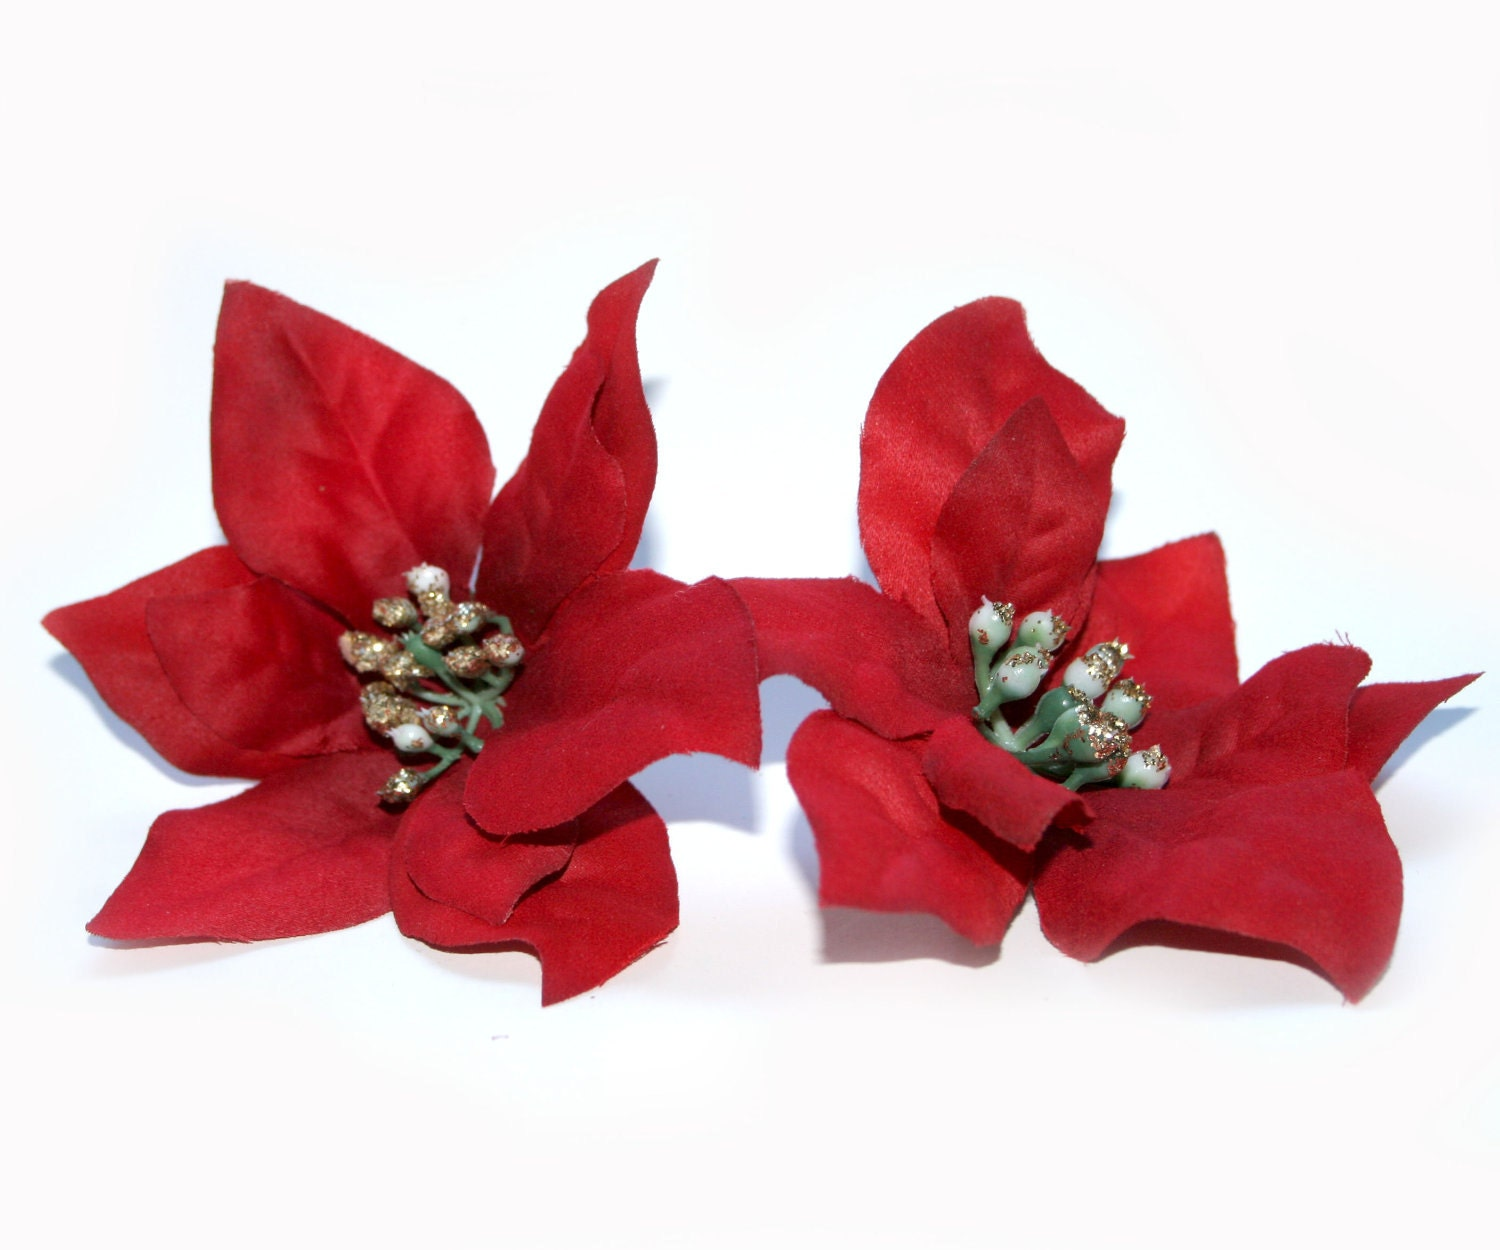 2 Artificial Red Poinsettia Silk Flowers Christmas Flowers Etsy